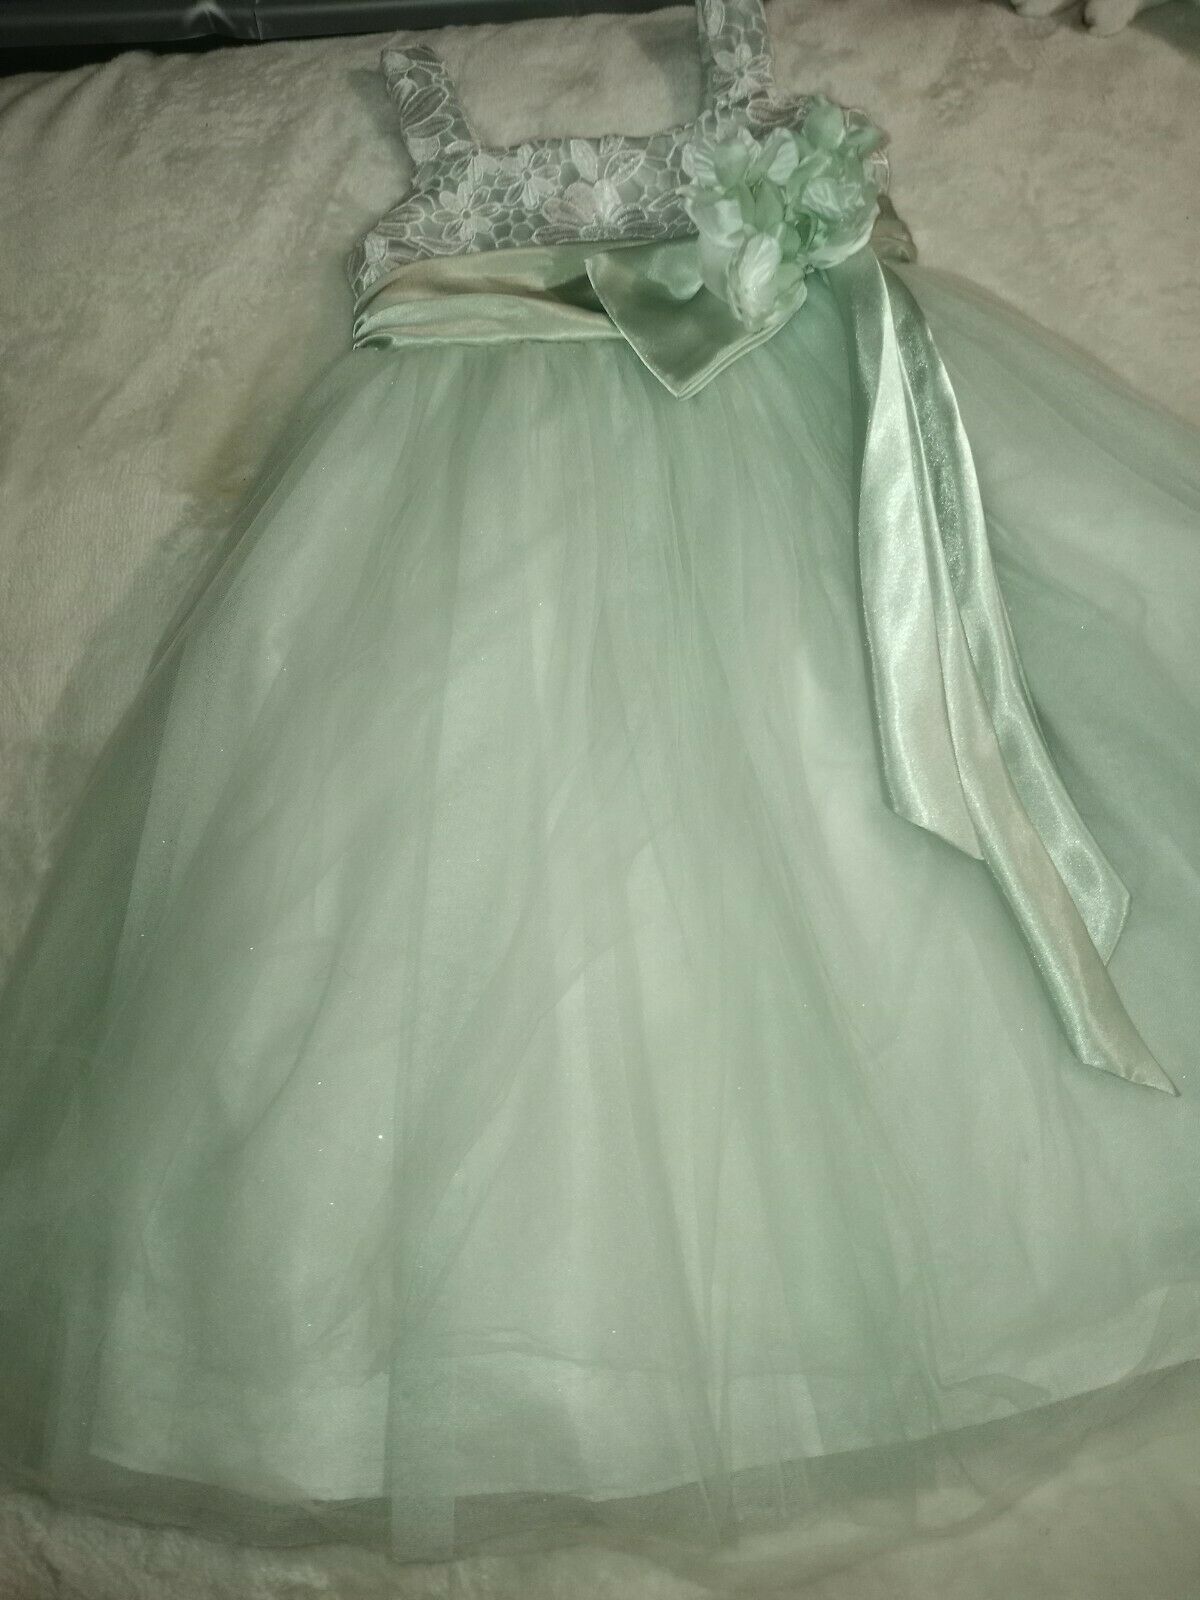 Chantilly Place Formal Tulle Mint Green Dress 6